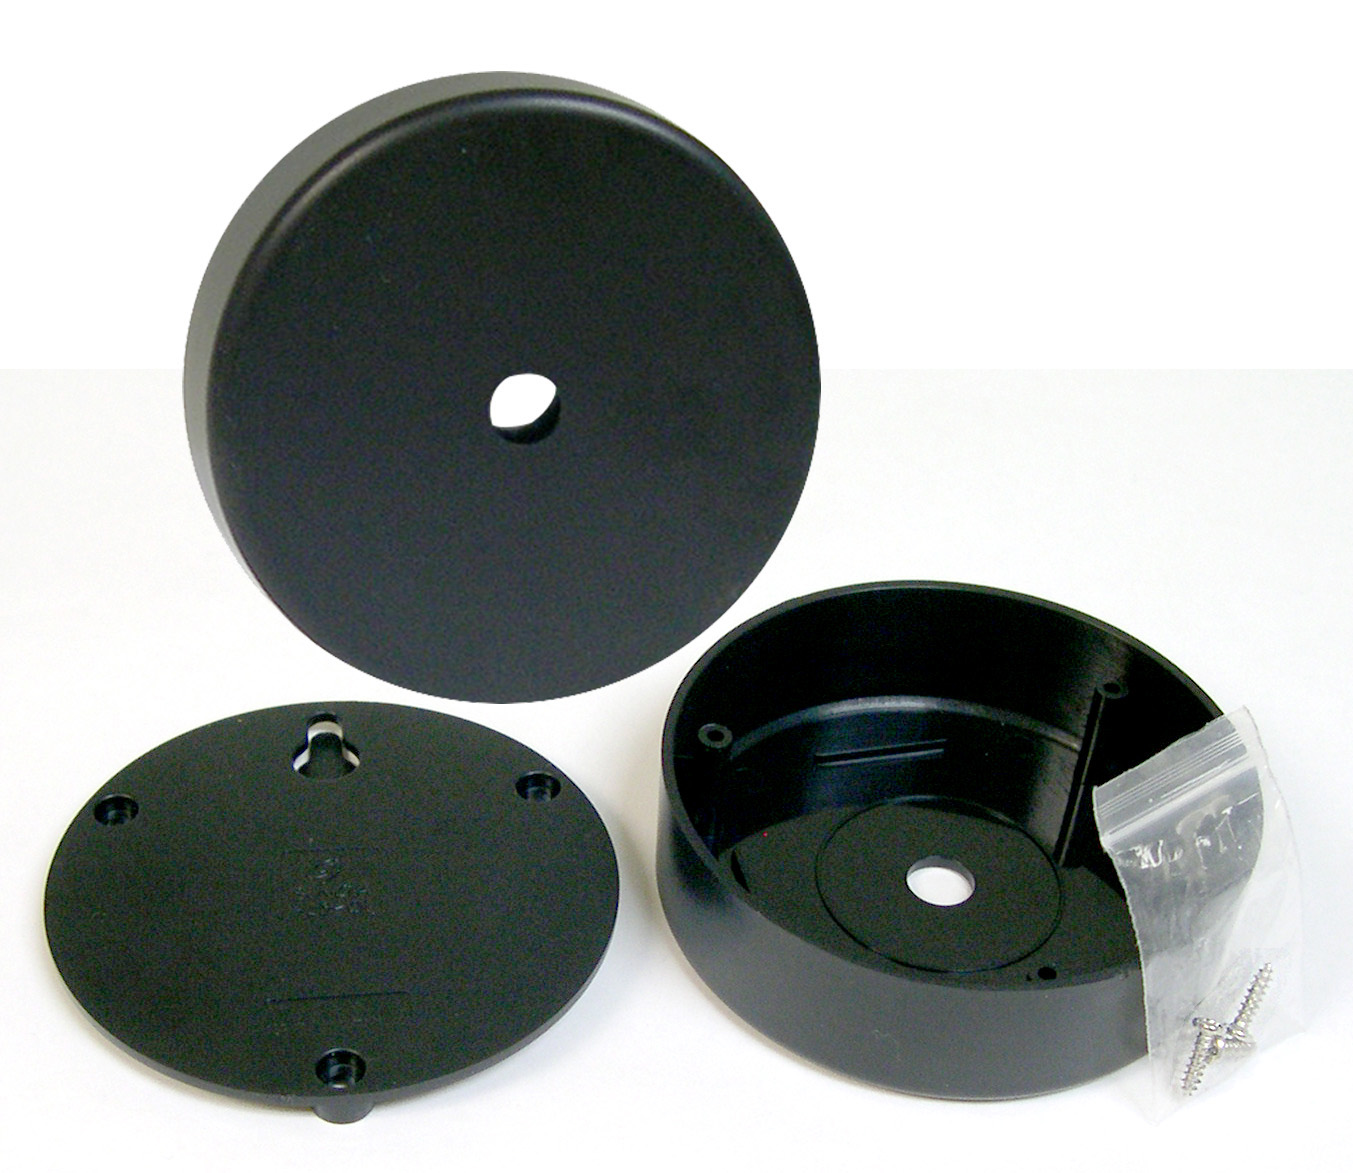 Quartz clock movements and hands for large dials national artcraft wall mounting cup amipublicfo Image collections